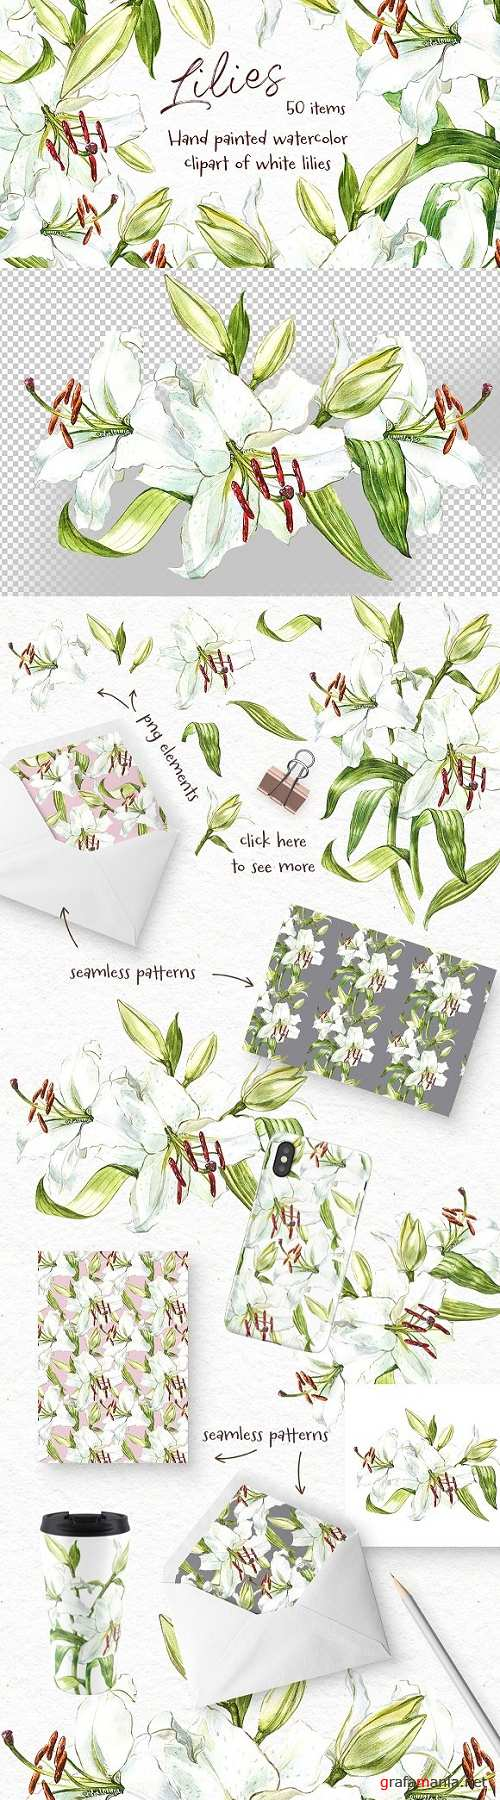 White Lilies watercolor clipart 2356766